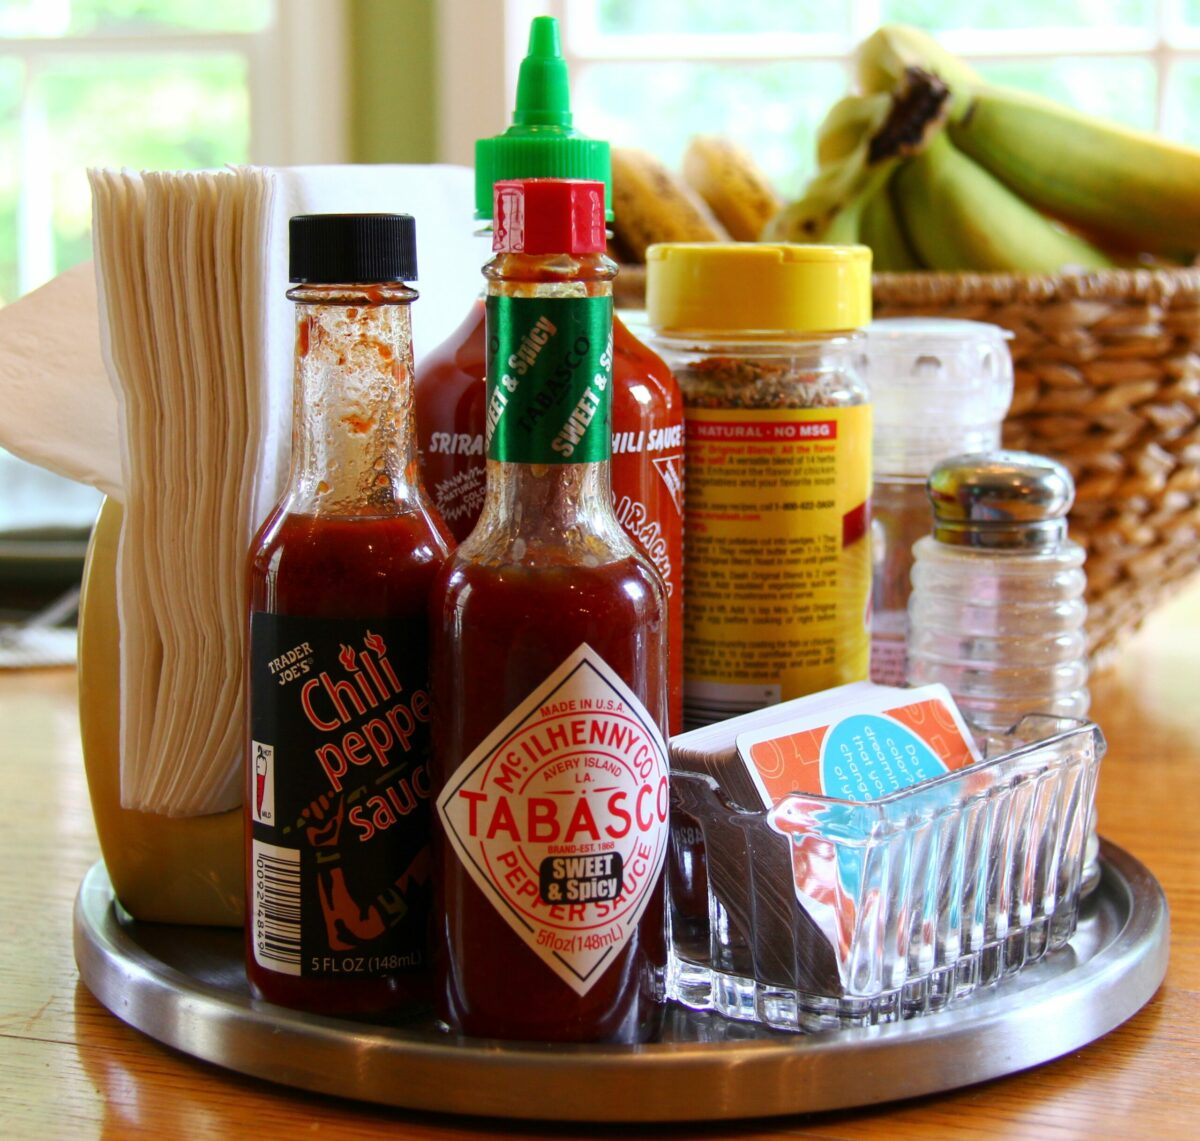 Lazy Susan with bottles of hot sauce and various spices.